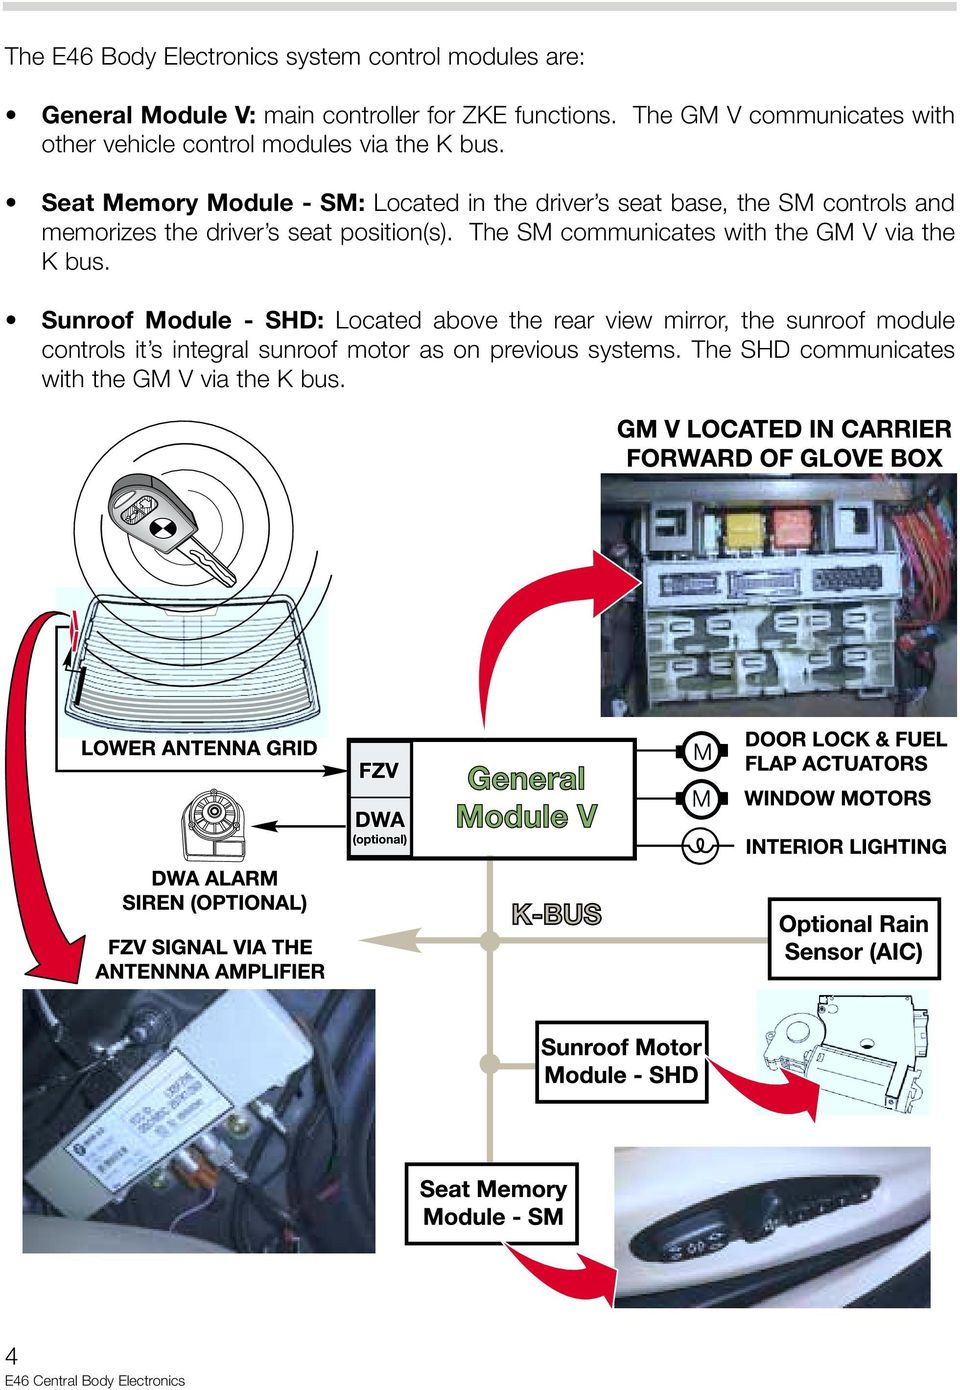 E46 Central Body Electronics Pdf Bmw Locking Wiring Diagram Seat Memory Module Sm Located In The Driver S Base